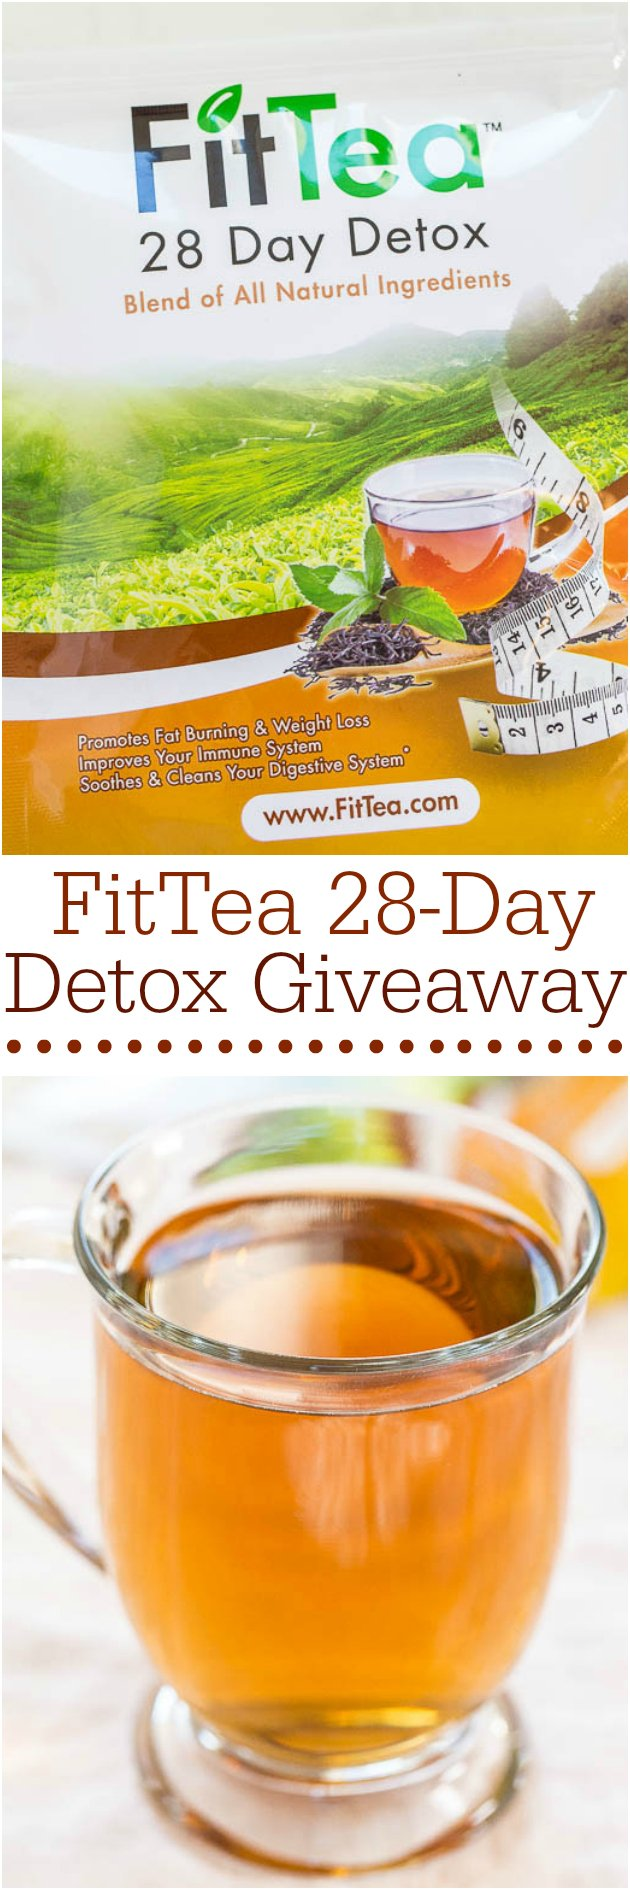 FitTea 28-Day Detox Giveaway - Give us a few weeks and you'll feet great! Fit Tea is your #1 health solution that promotes weight loss and gives you tons of energy!